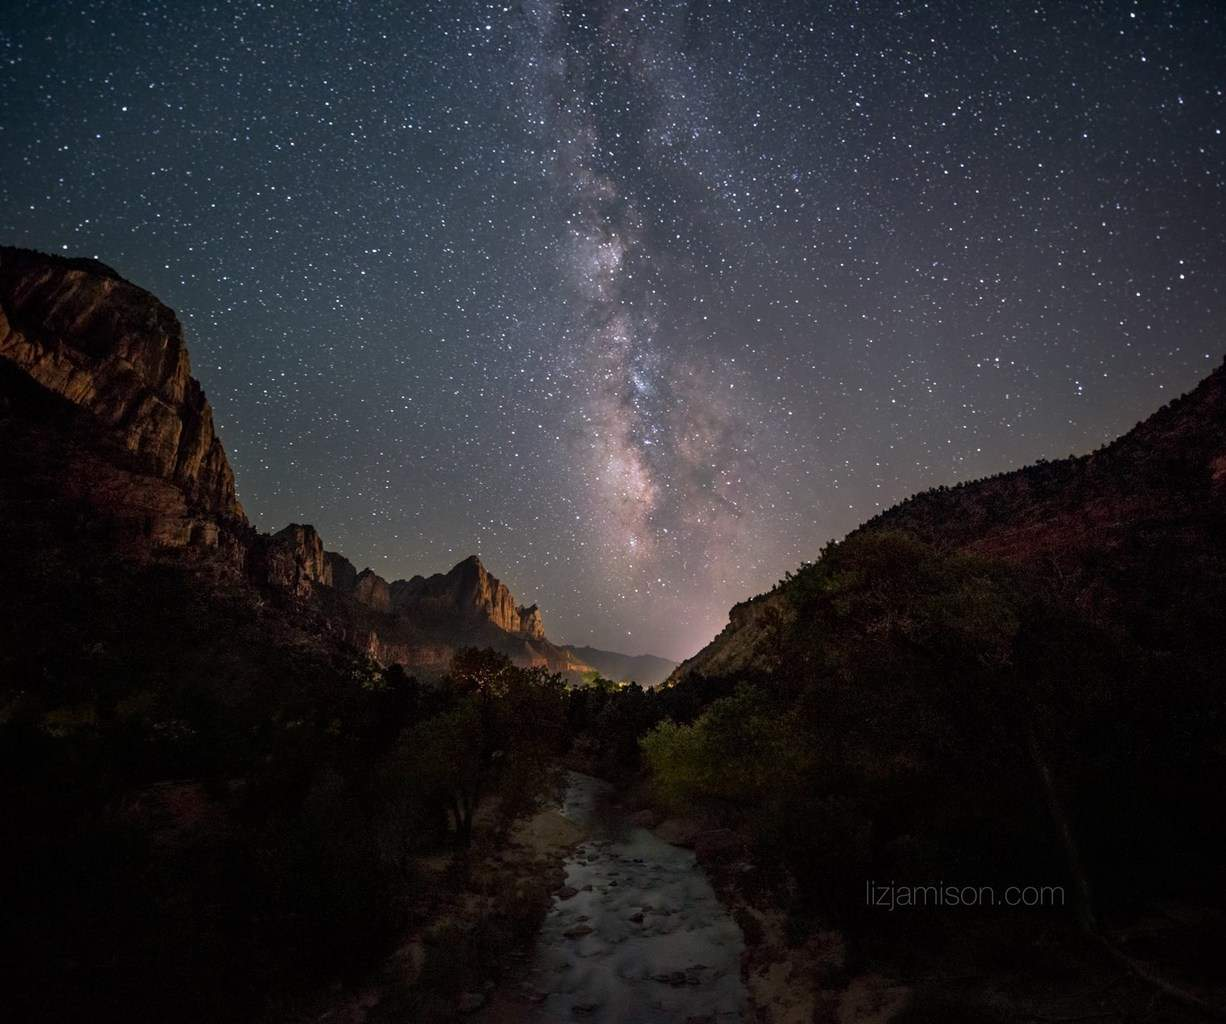 No current storms. But yay for Milky Way! haha Zion National Park in Utah is amazing. I was up there last week before all of the flooding. 15mm, 2.8f, ISO 3200, 30sec